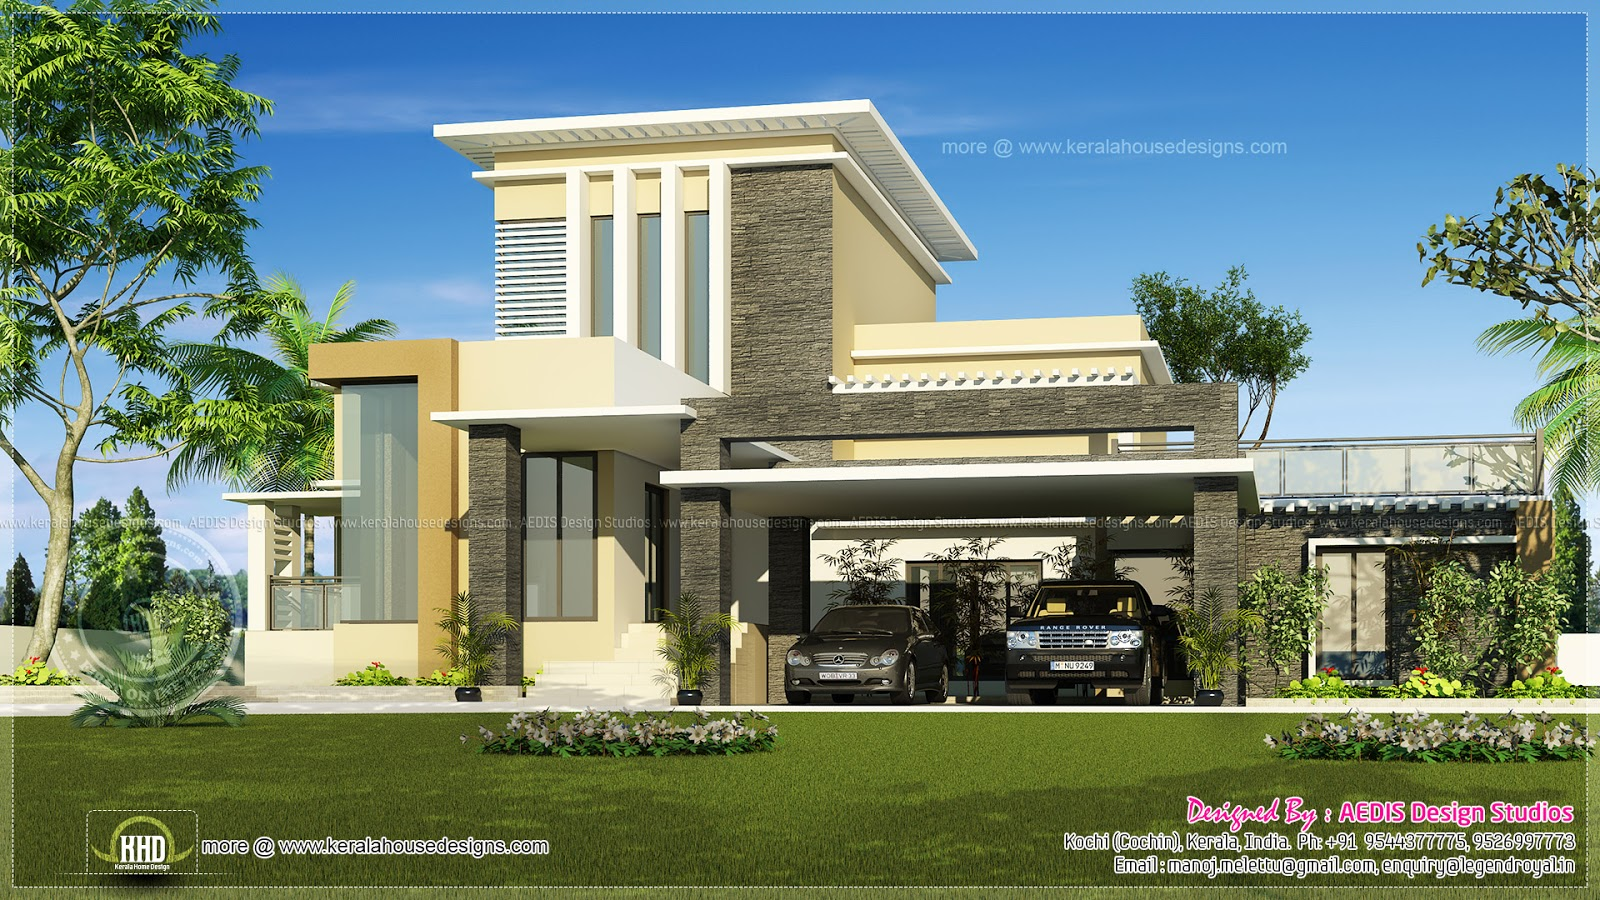 House Plans And Design Modern House Plans With Flat Roof